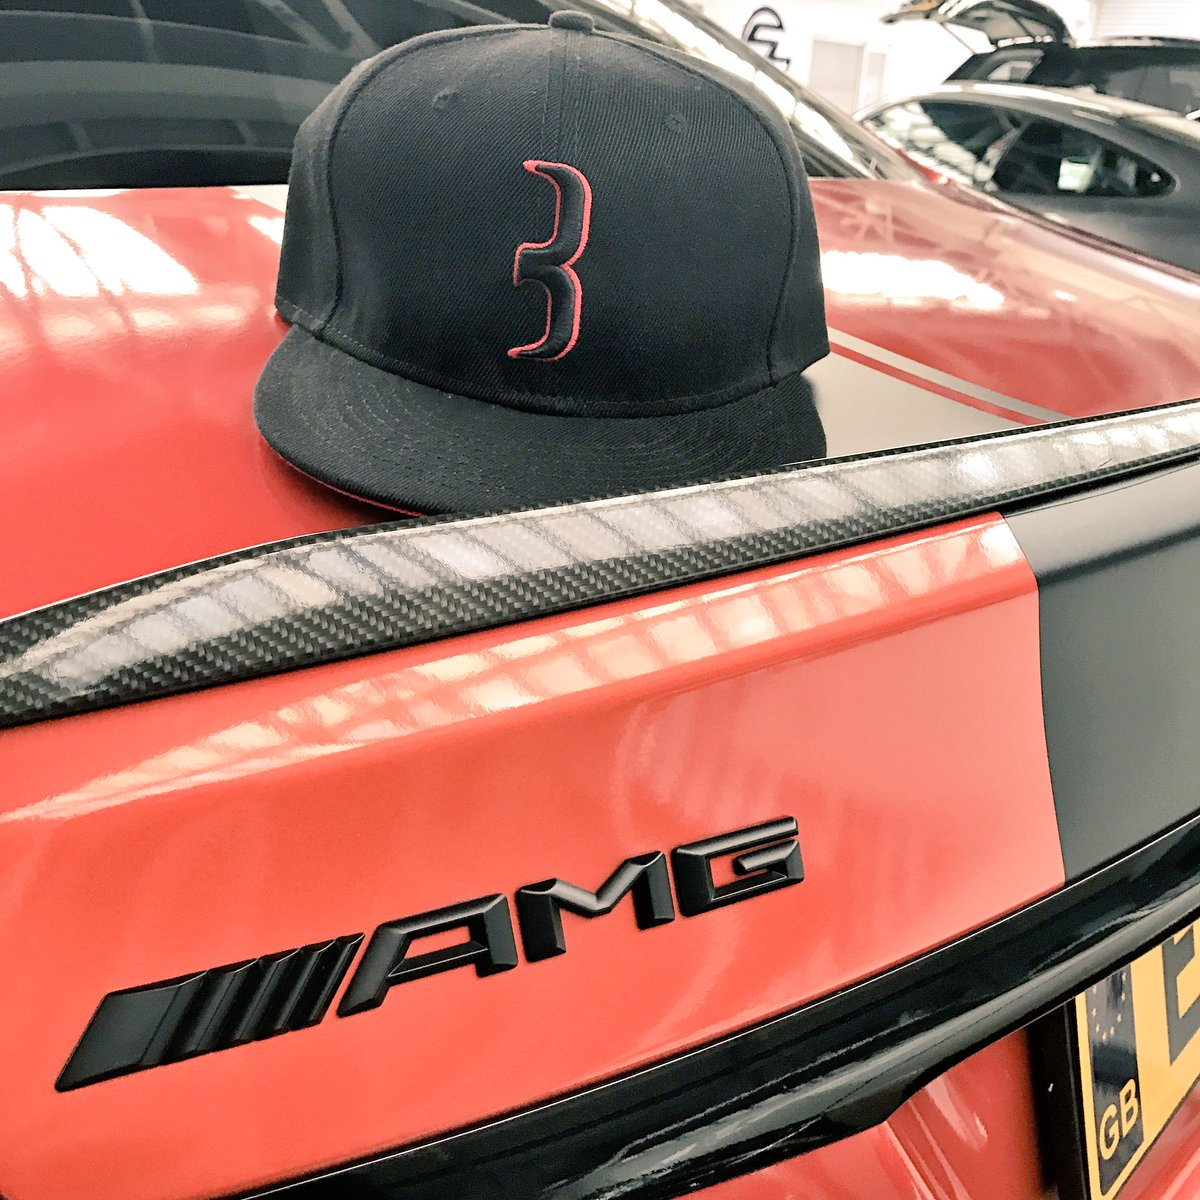 The new red and black baulla on the Merc AMG   Online at    http:// baulla.com  &nbsp;    #sunday #mercedes #amg #snapback #swag #fashion<br>http://pic.twitter.com/jvPTqLgBjY